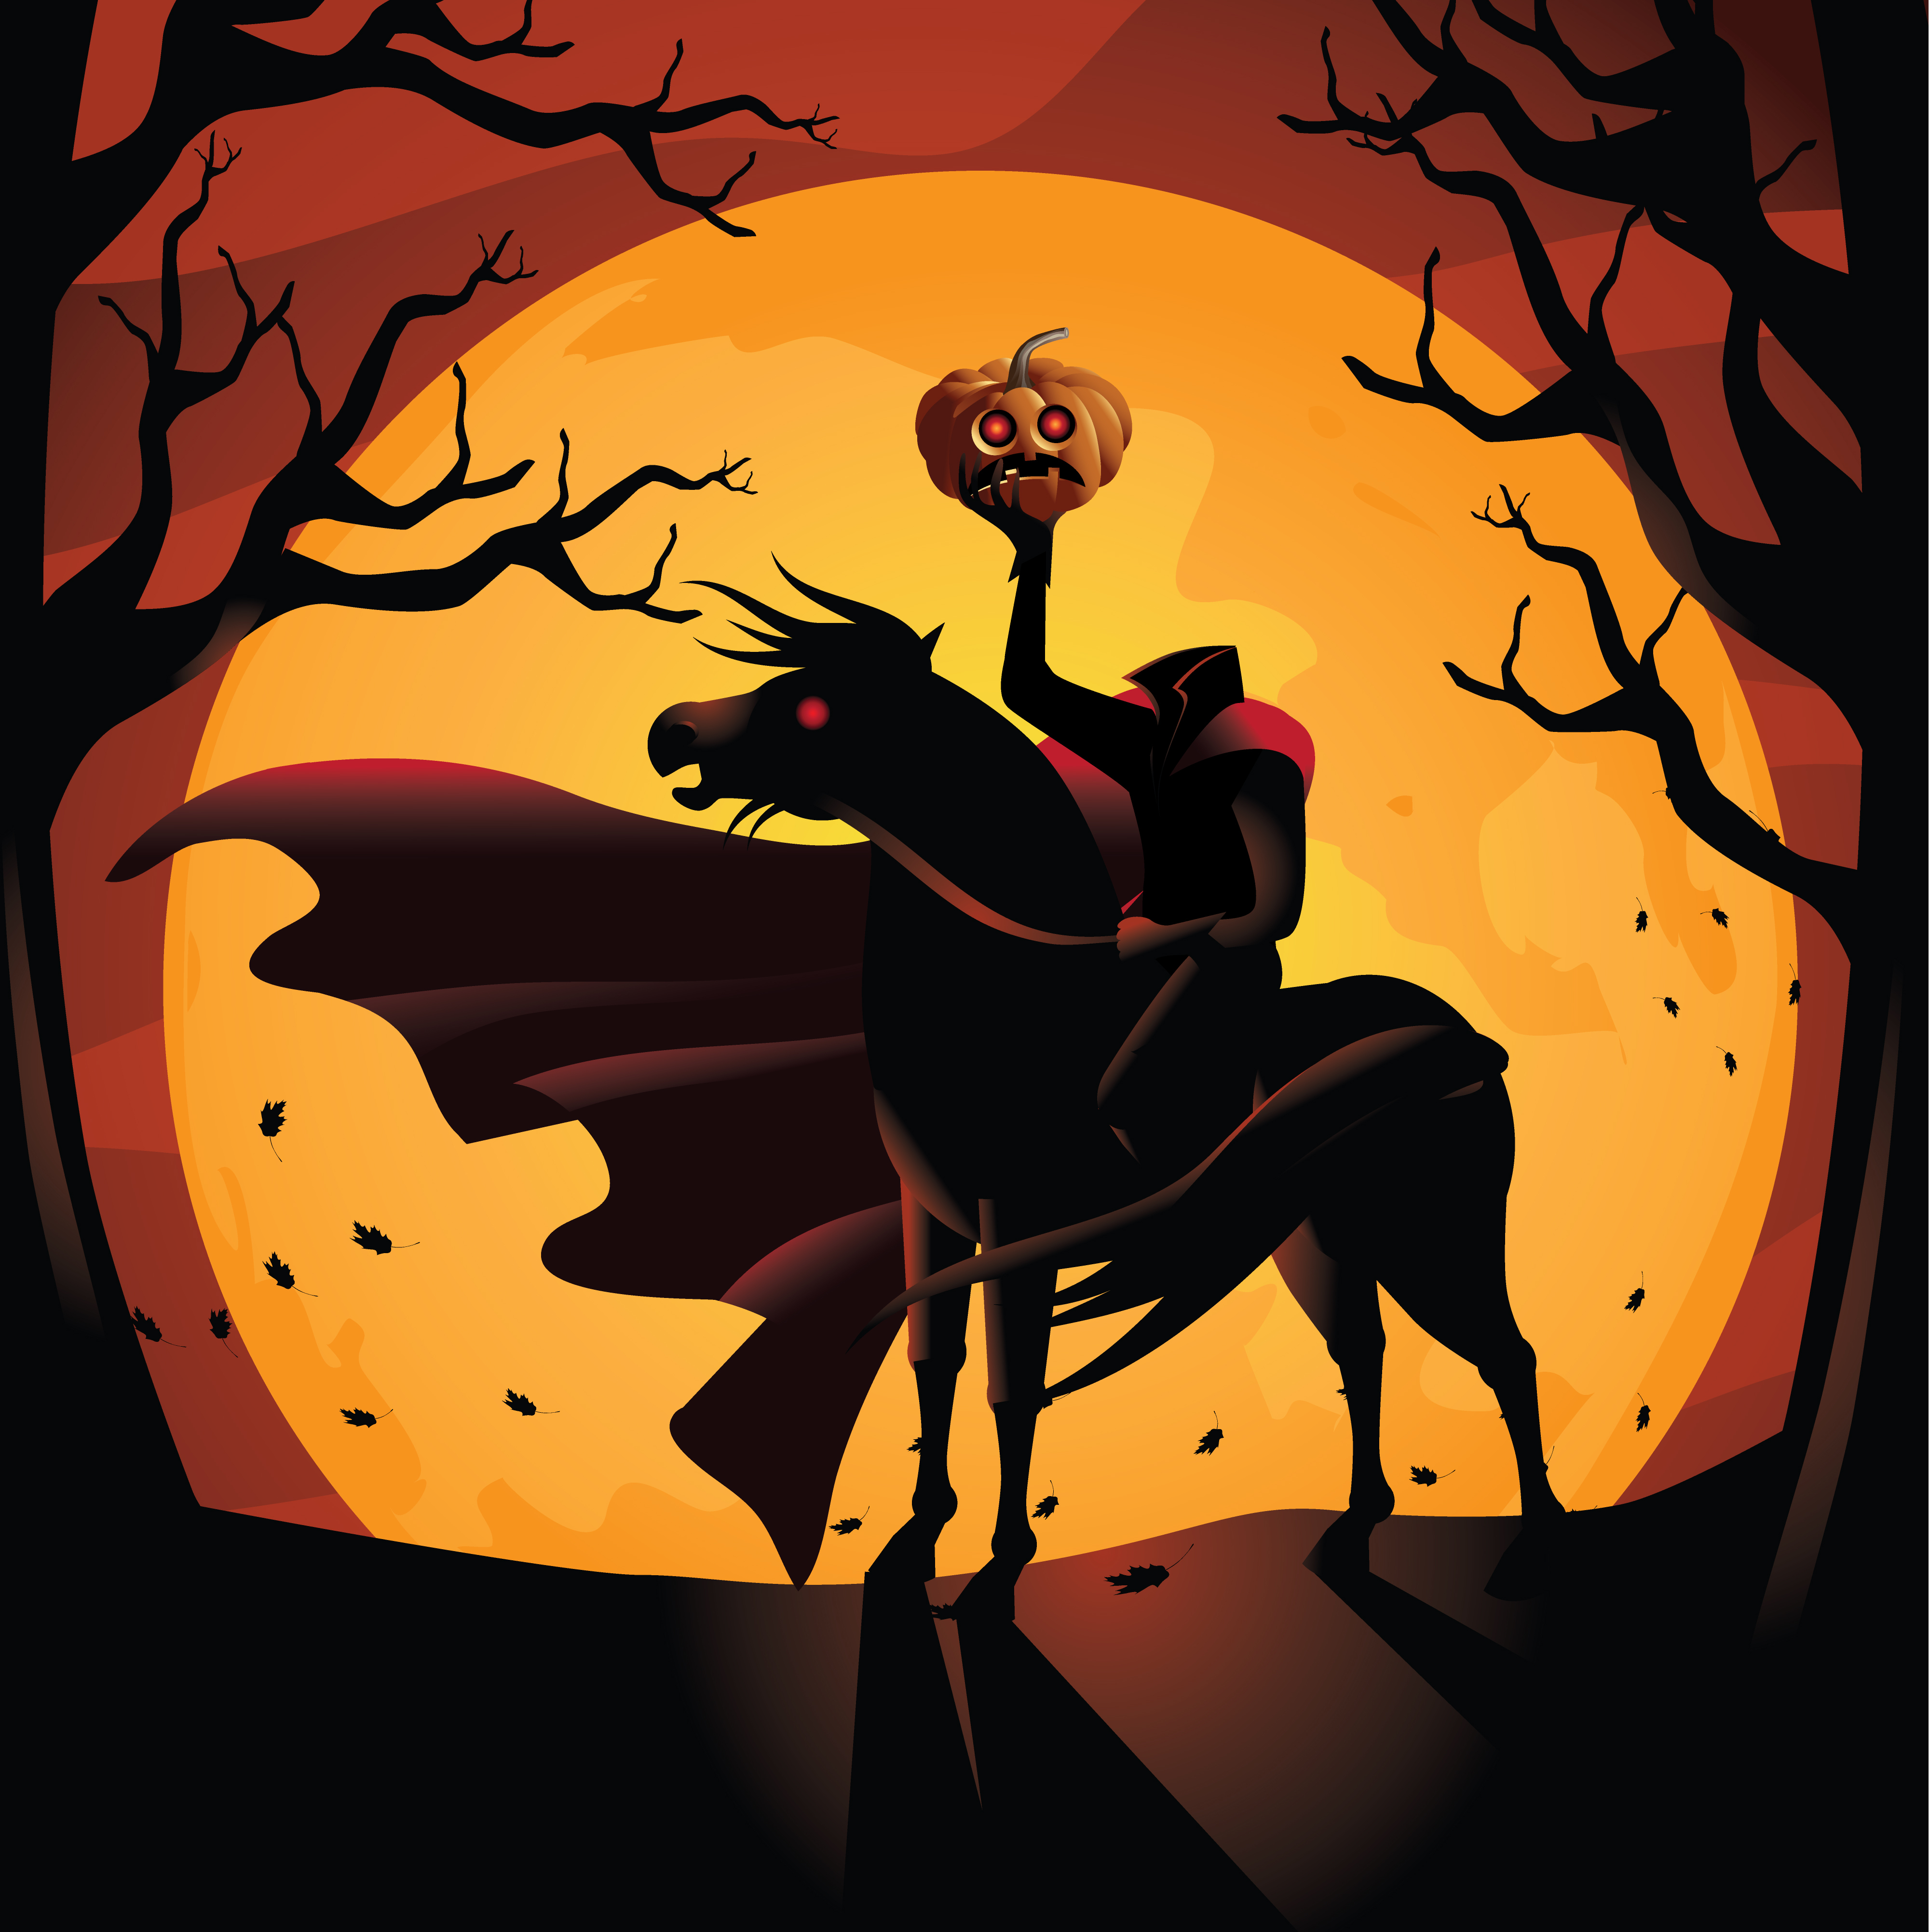 the legend of sleepy hollow plot diagram room setup a spooky october bullion giveaway provident